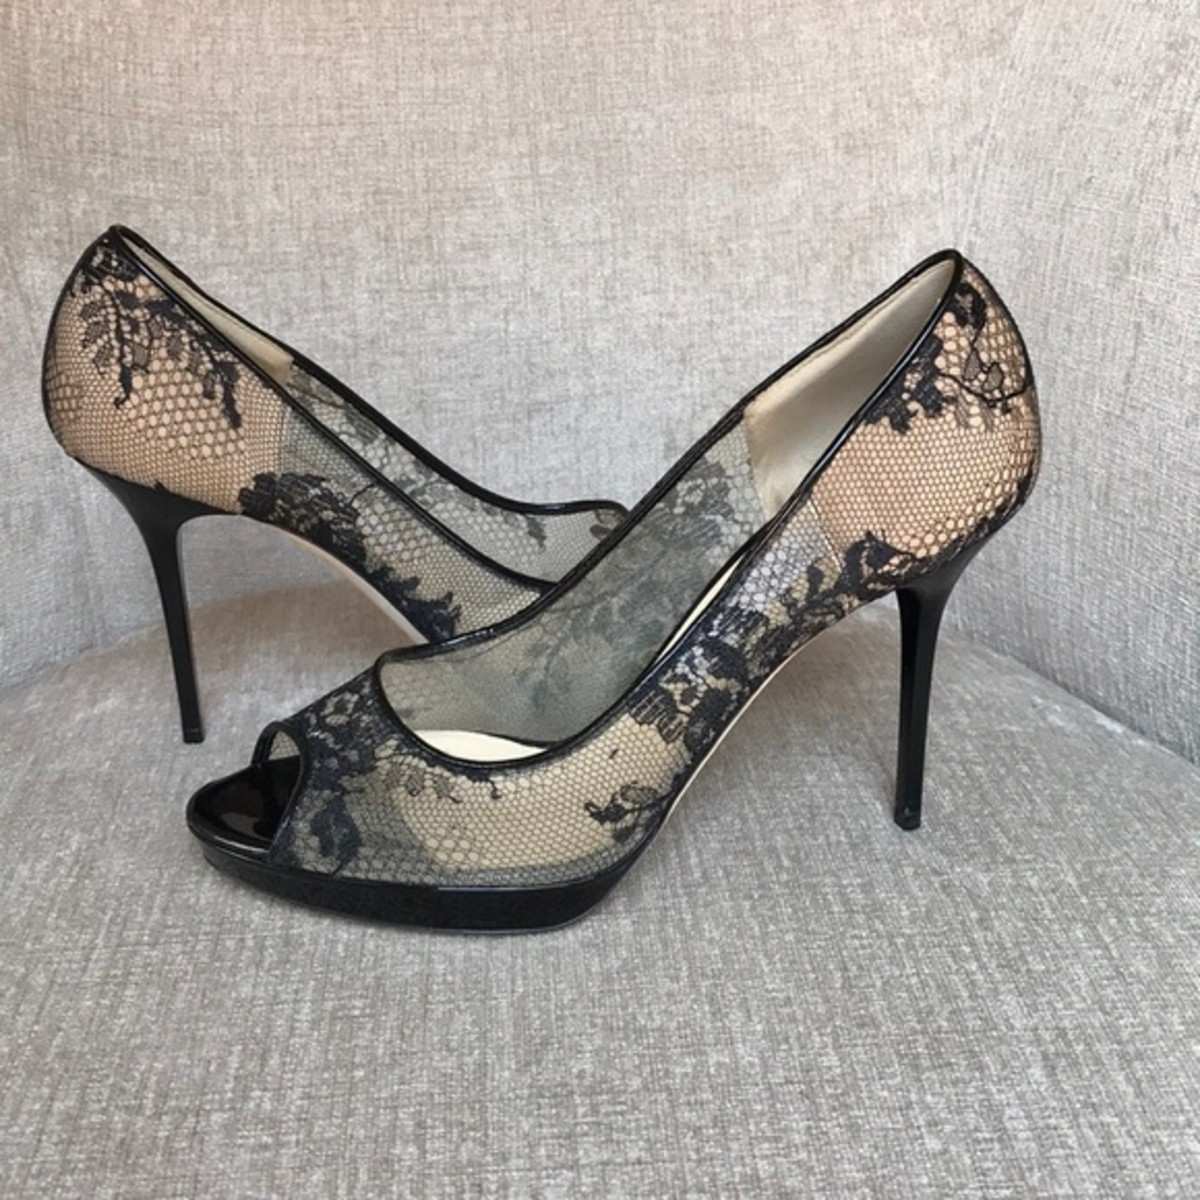 Lace Platform Pumps